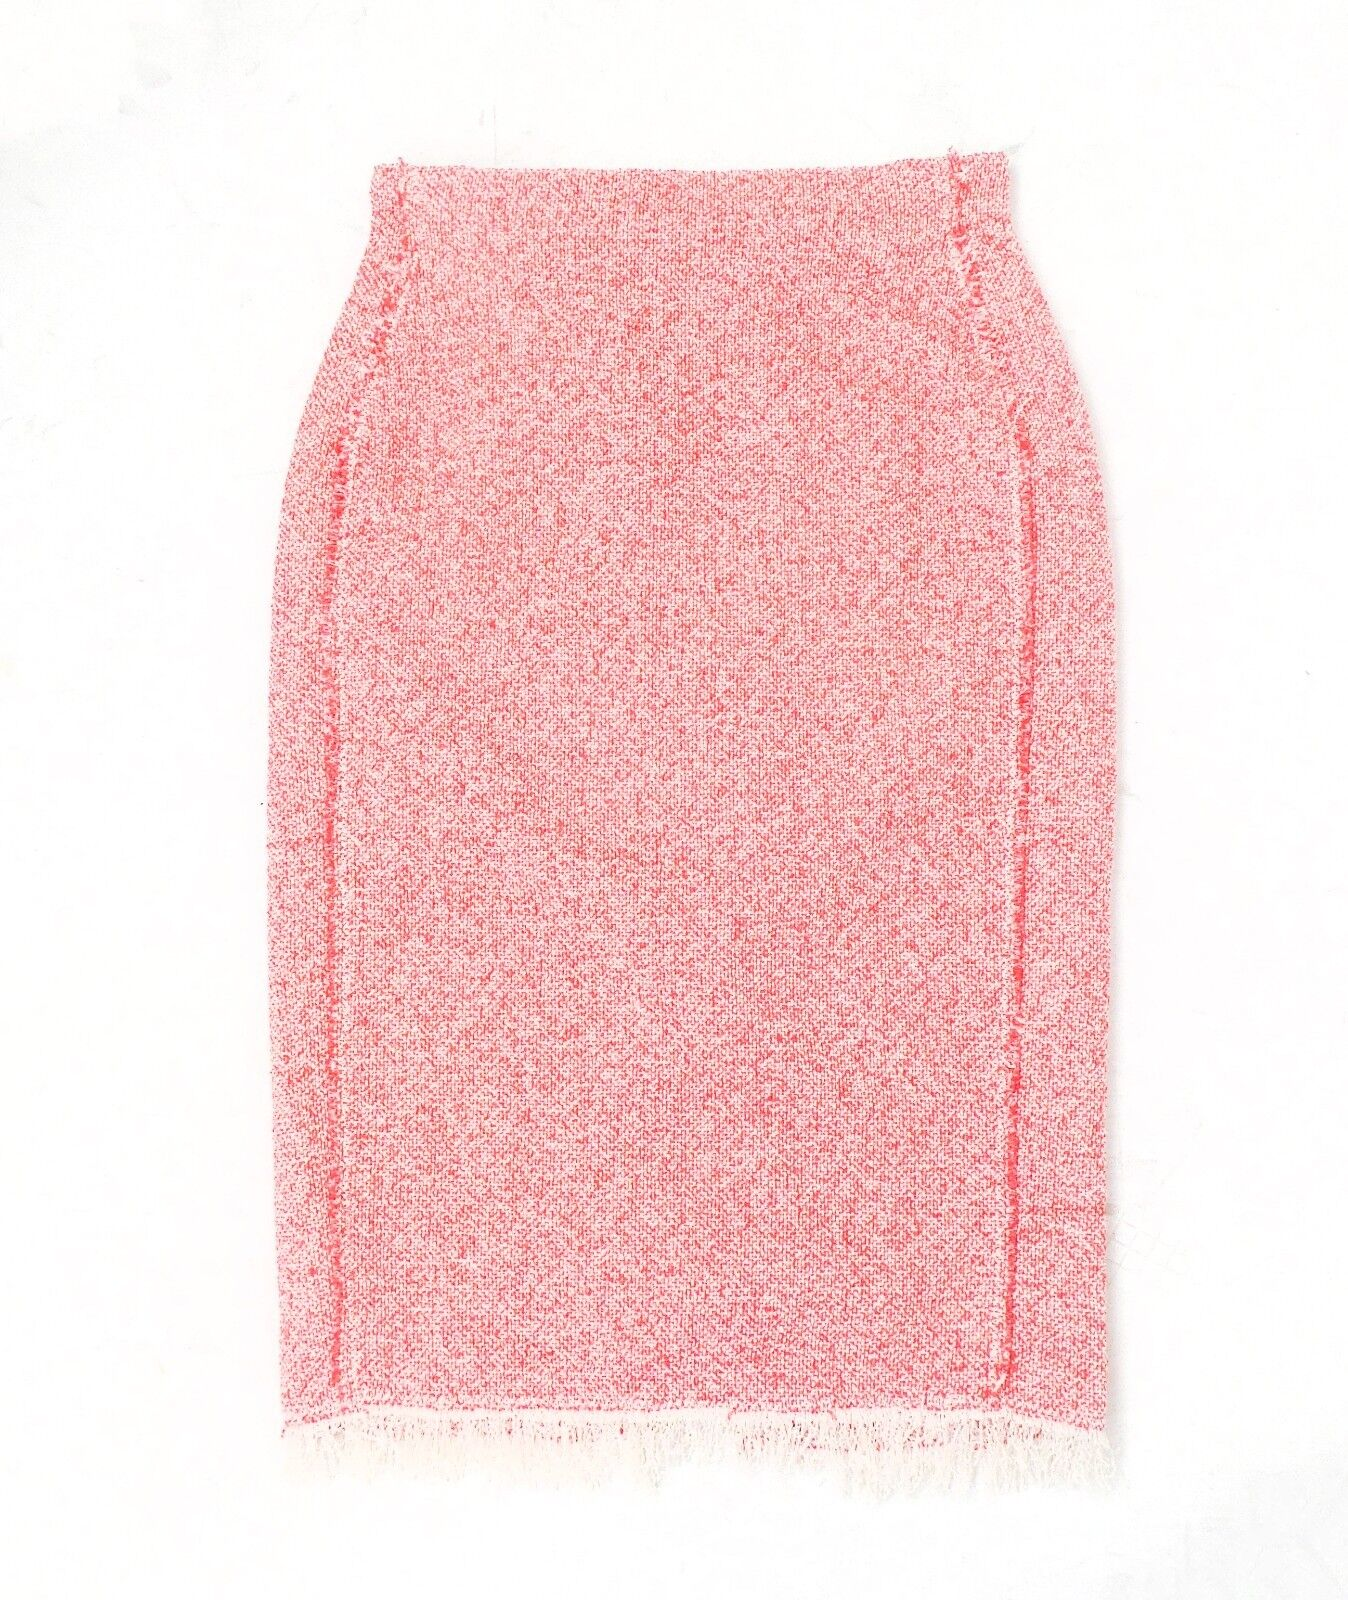 Rebecca Taylor   Hot Pink Tweed Skirt Size 6